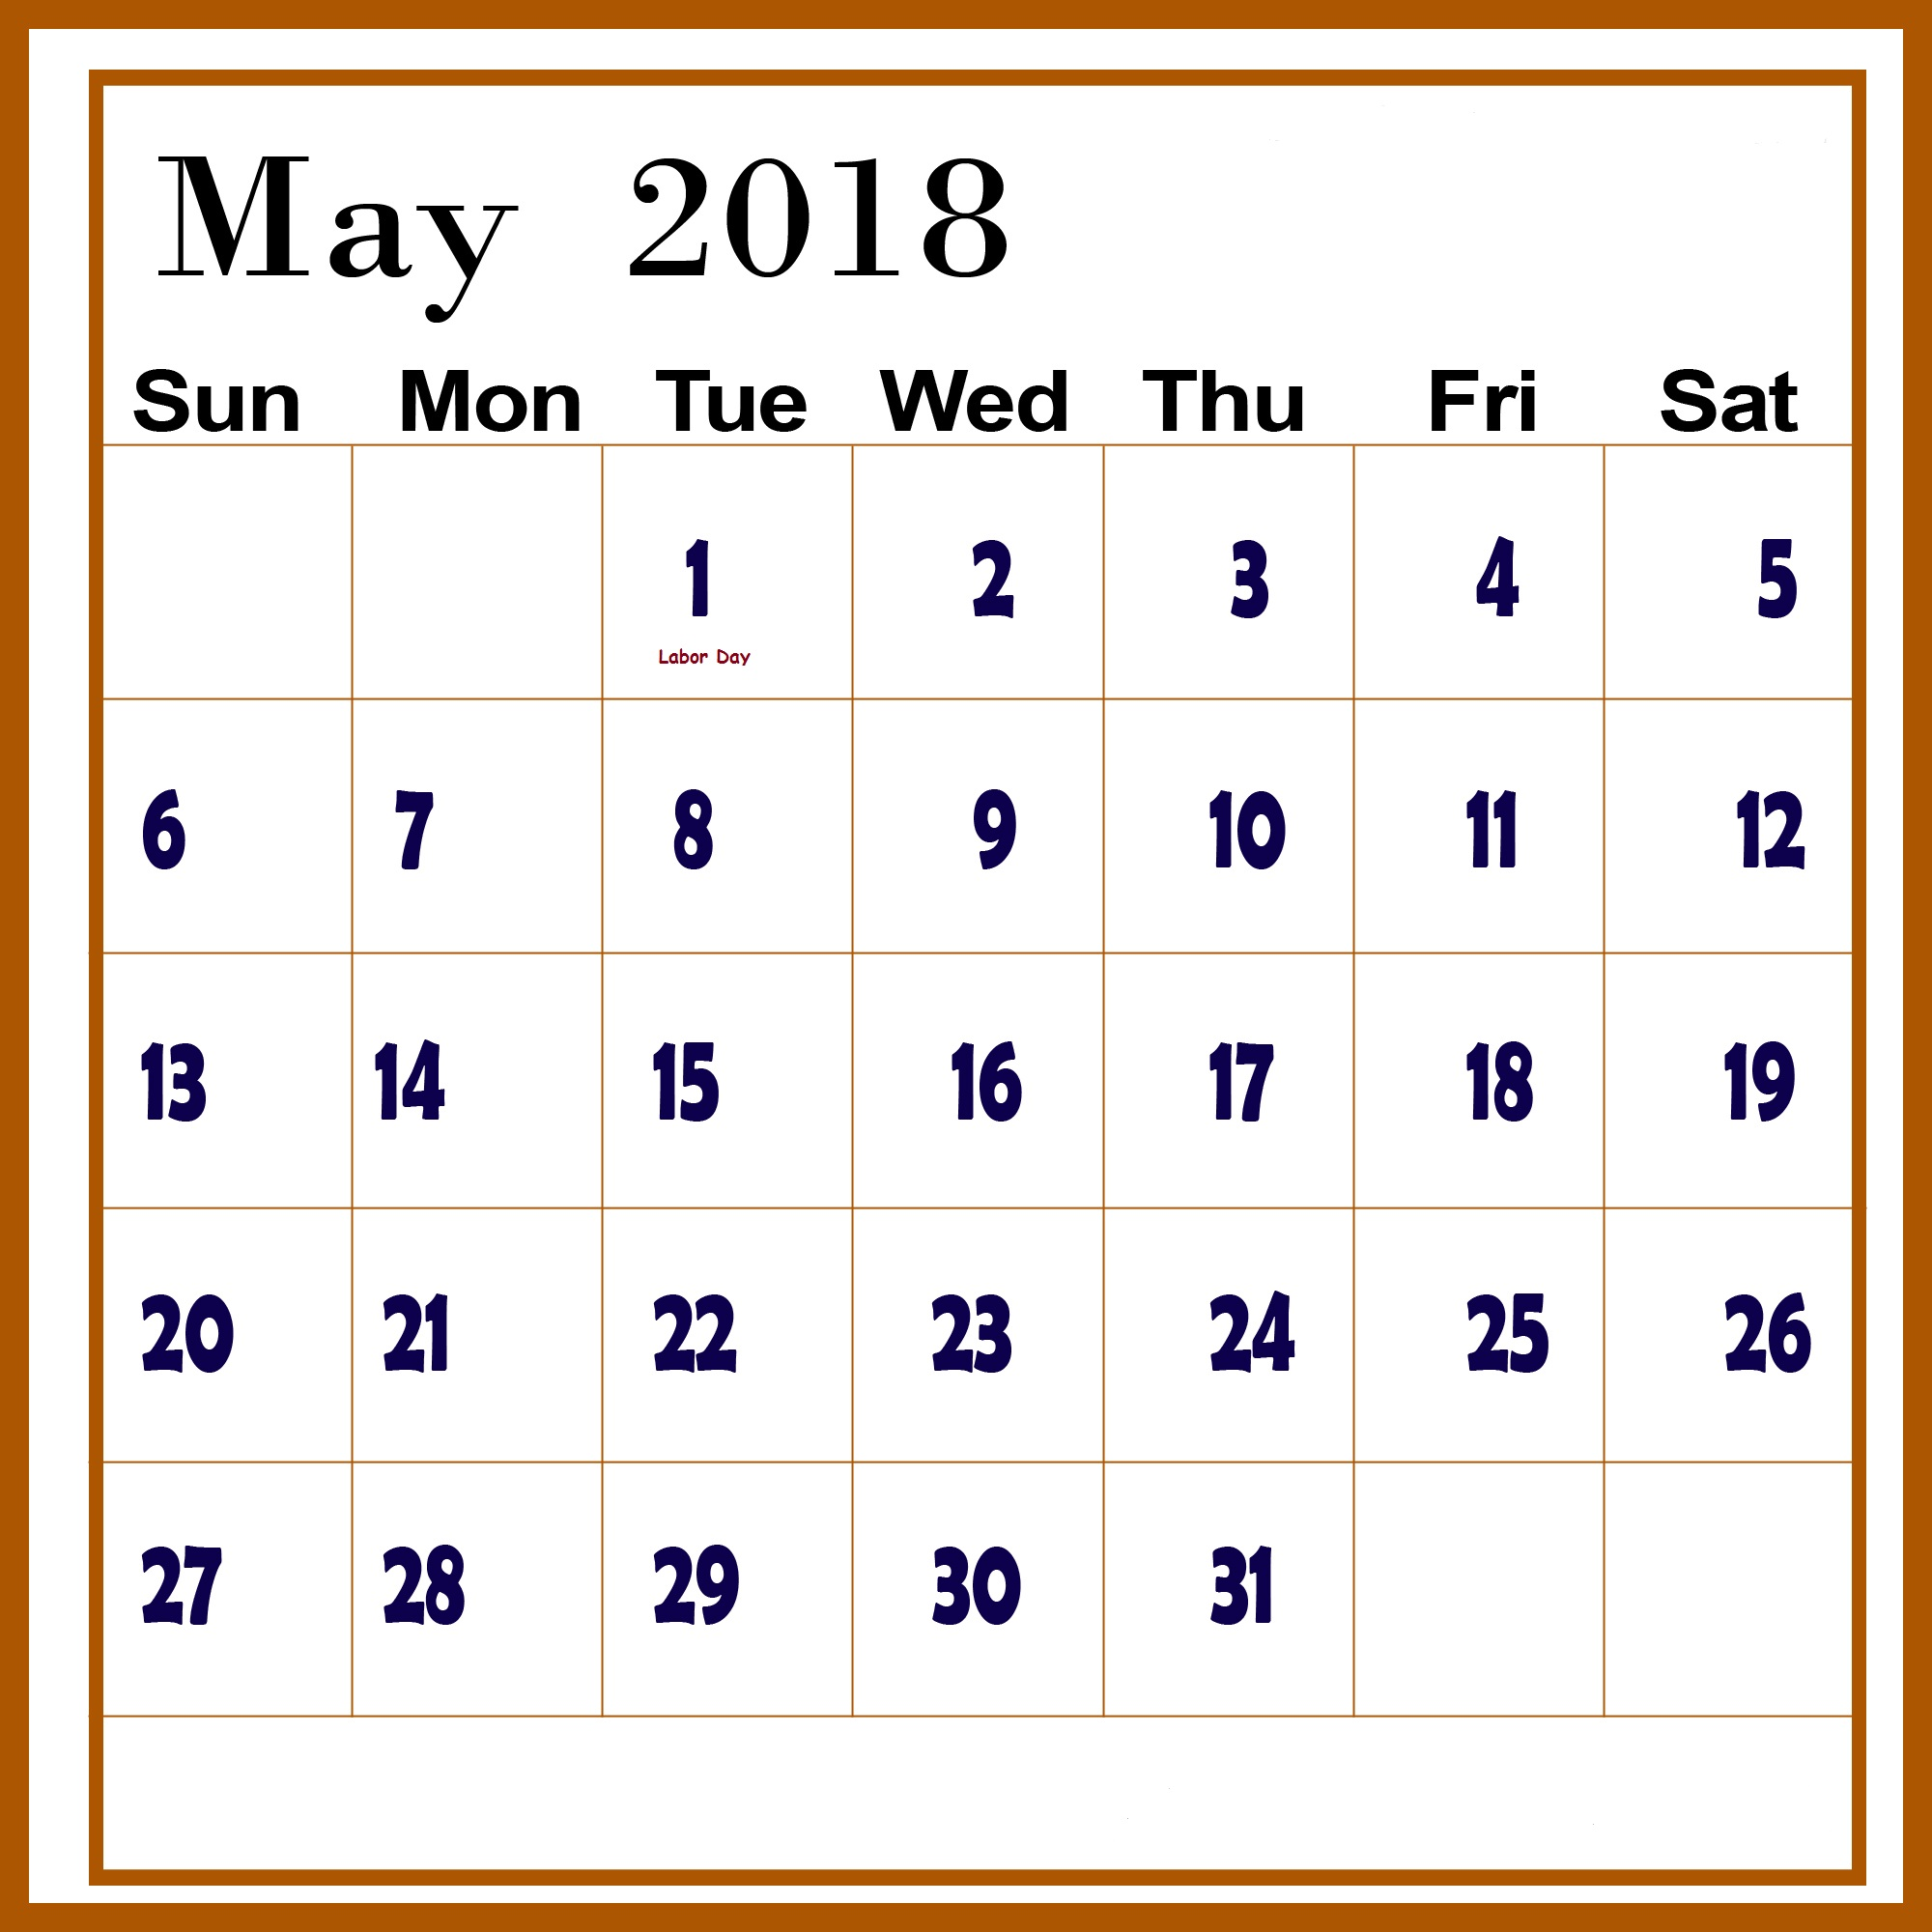 Chinese Calendar 2018 Pdf : May chinese calendar printable template